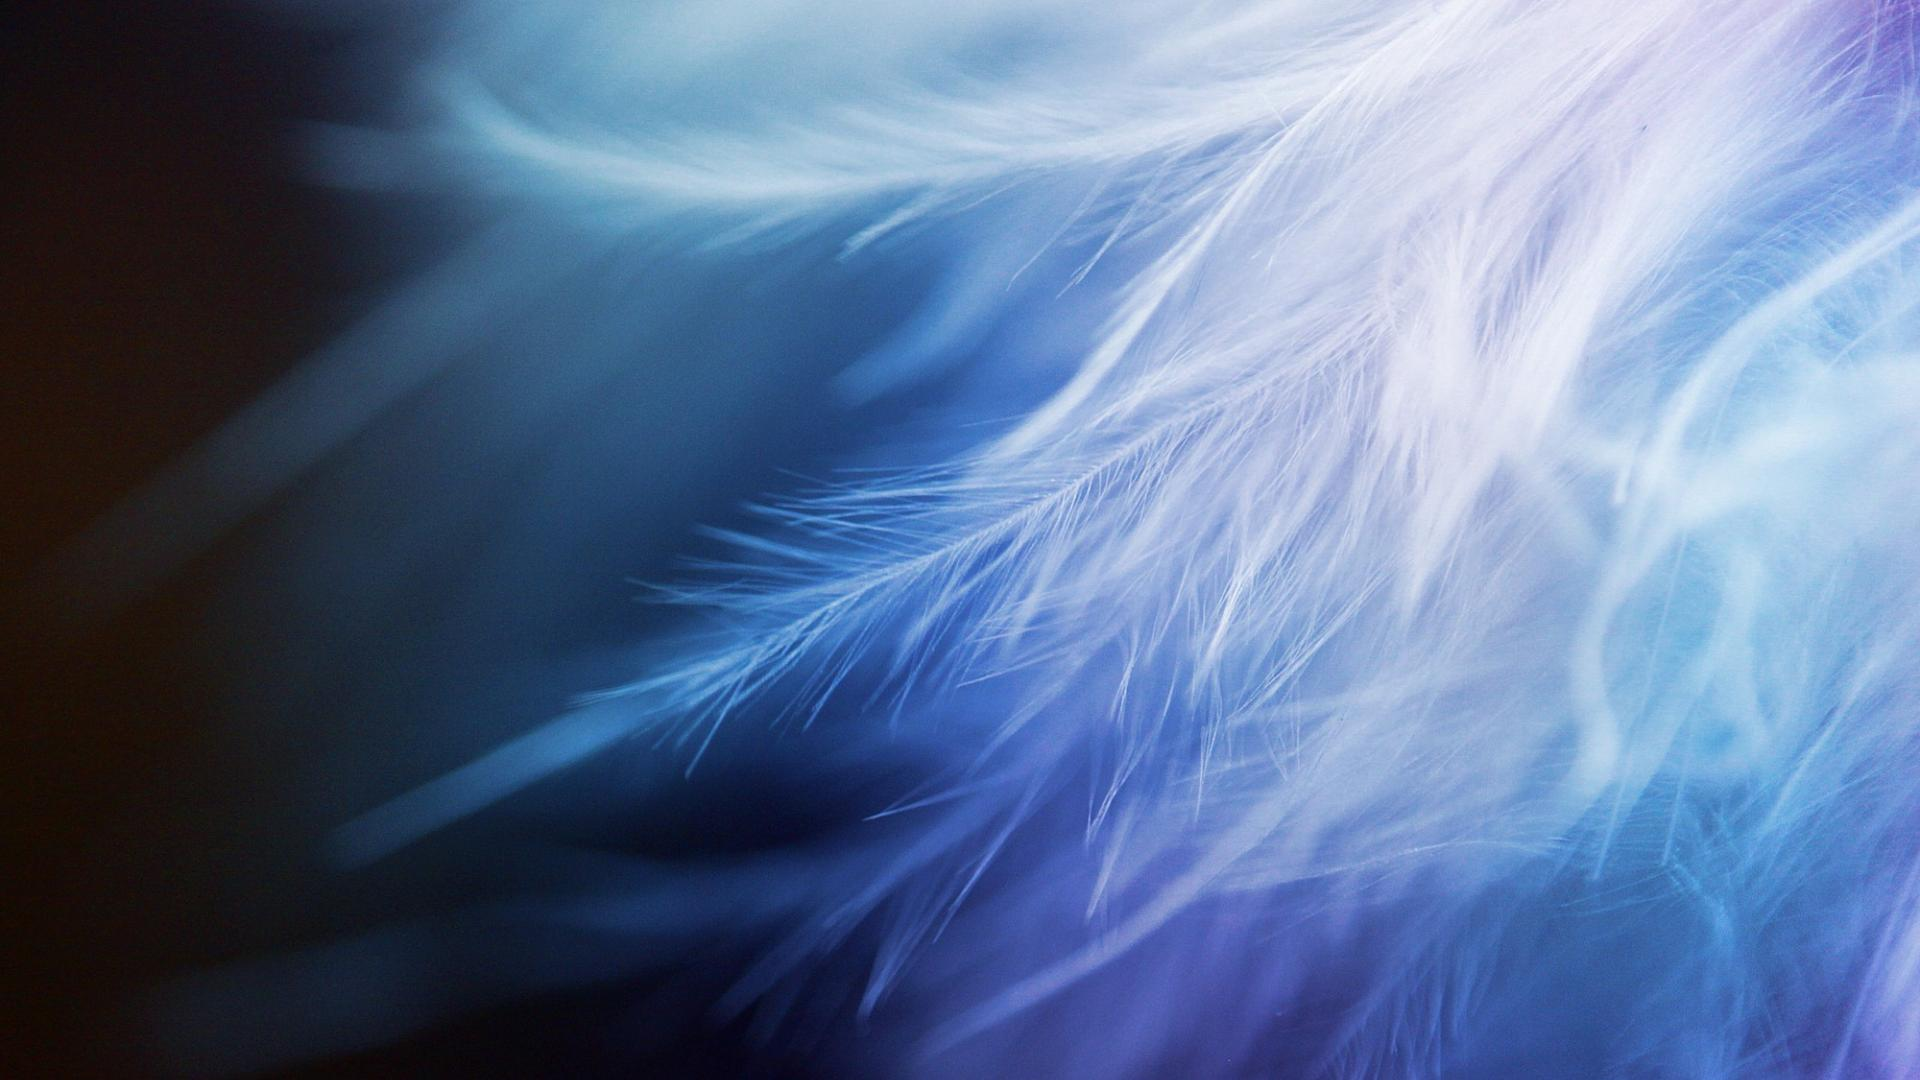 Abstract feathers wallpaper 66106 1920x1080